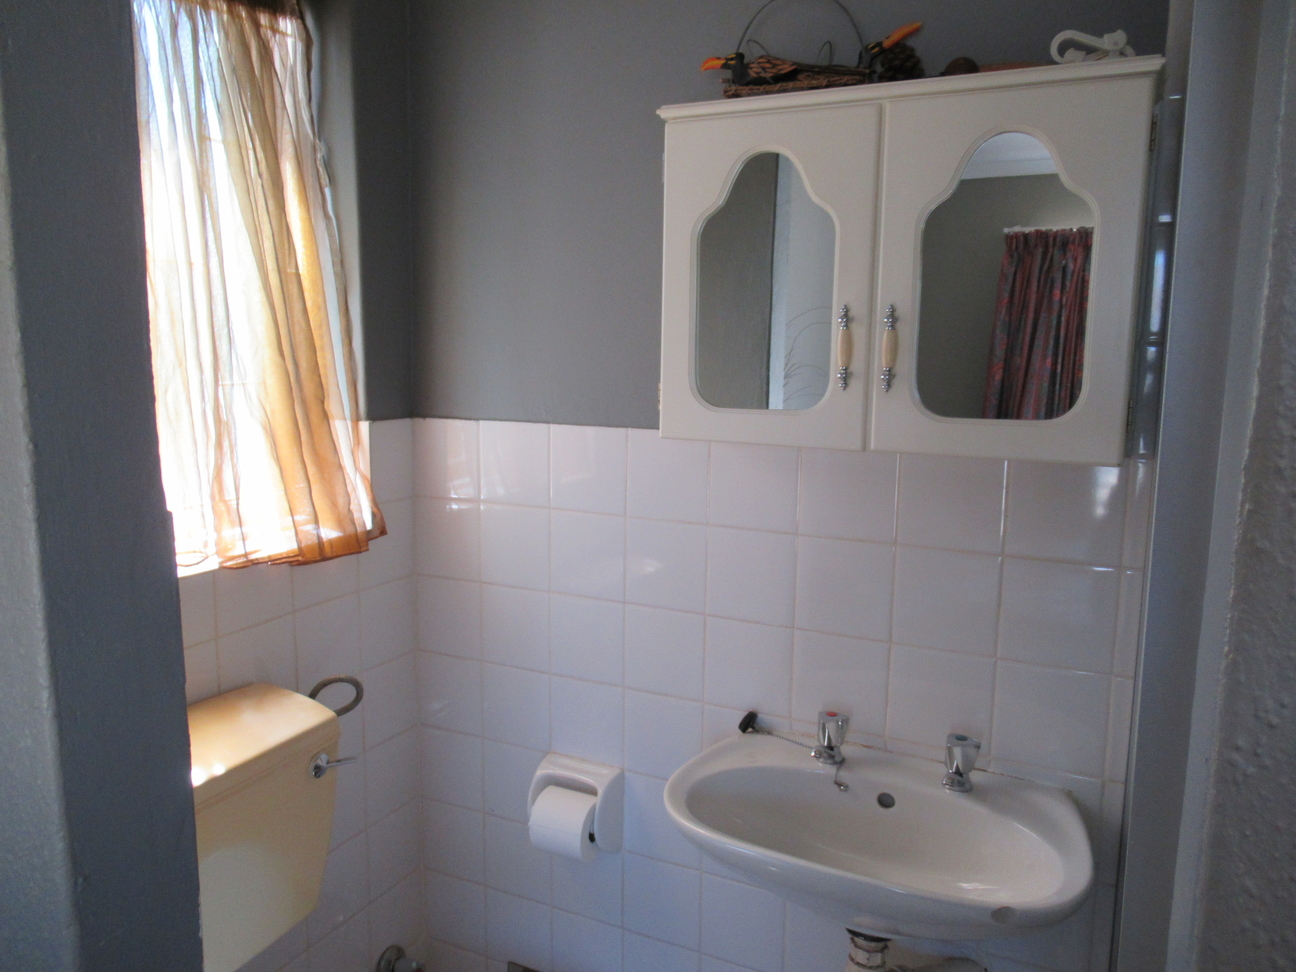 3 Bedroom House for sale in Strand South ENT0082002 : photo#7